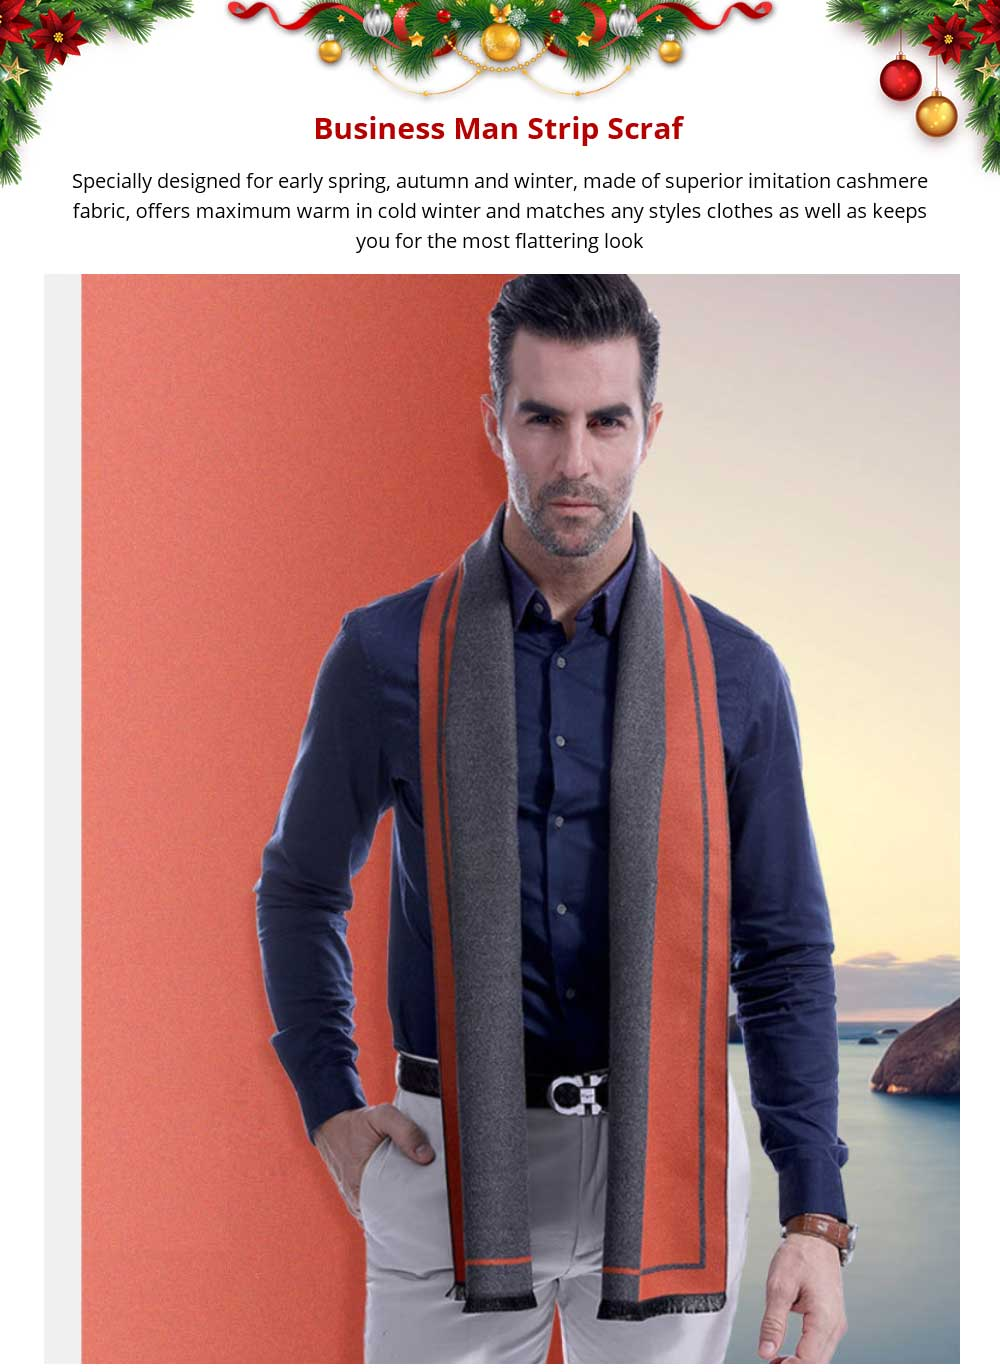 Business Scarf Man Stripe for Business Casual Fashion, Warm Imitation Cashmere Scarves, Contrast Color Gentleman Scarf 7